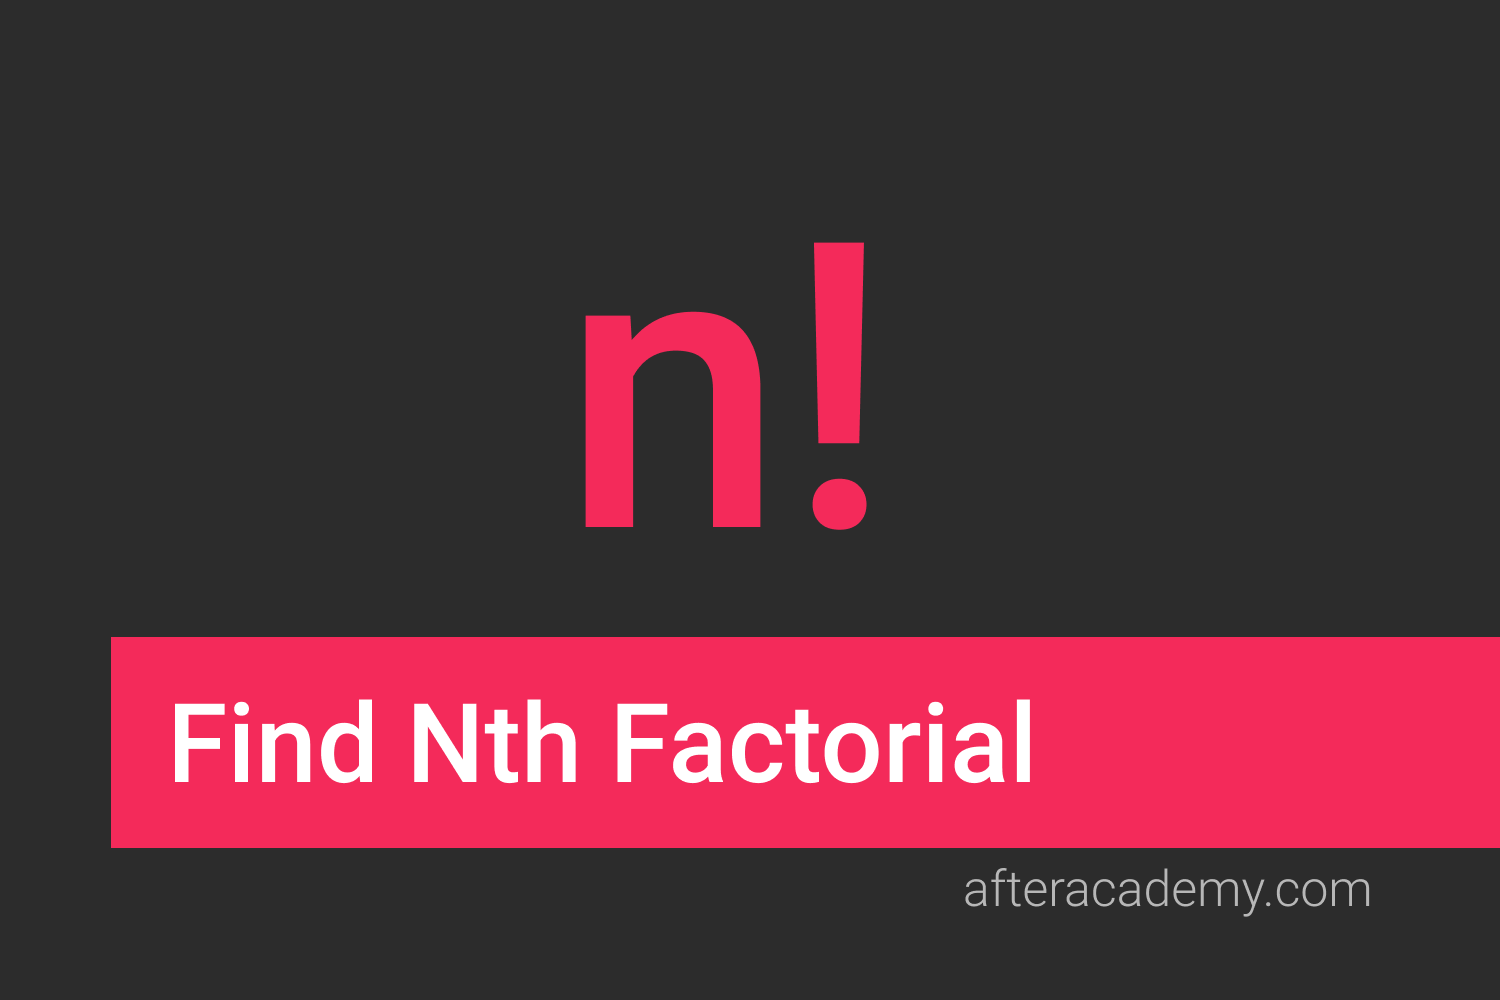 Find Nth Factorial